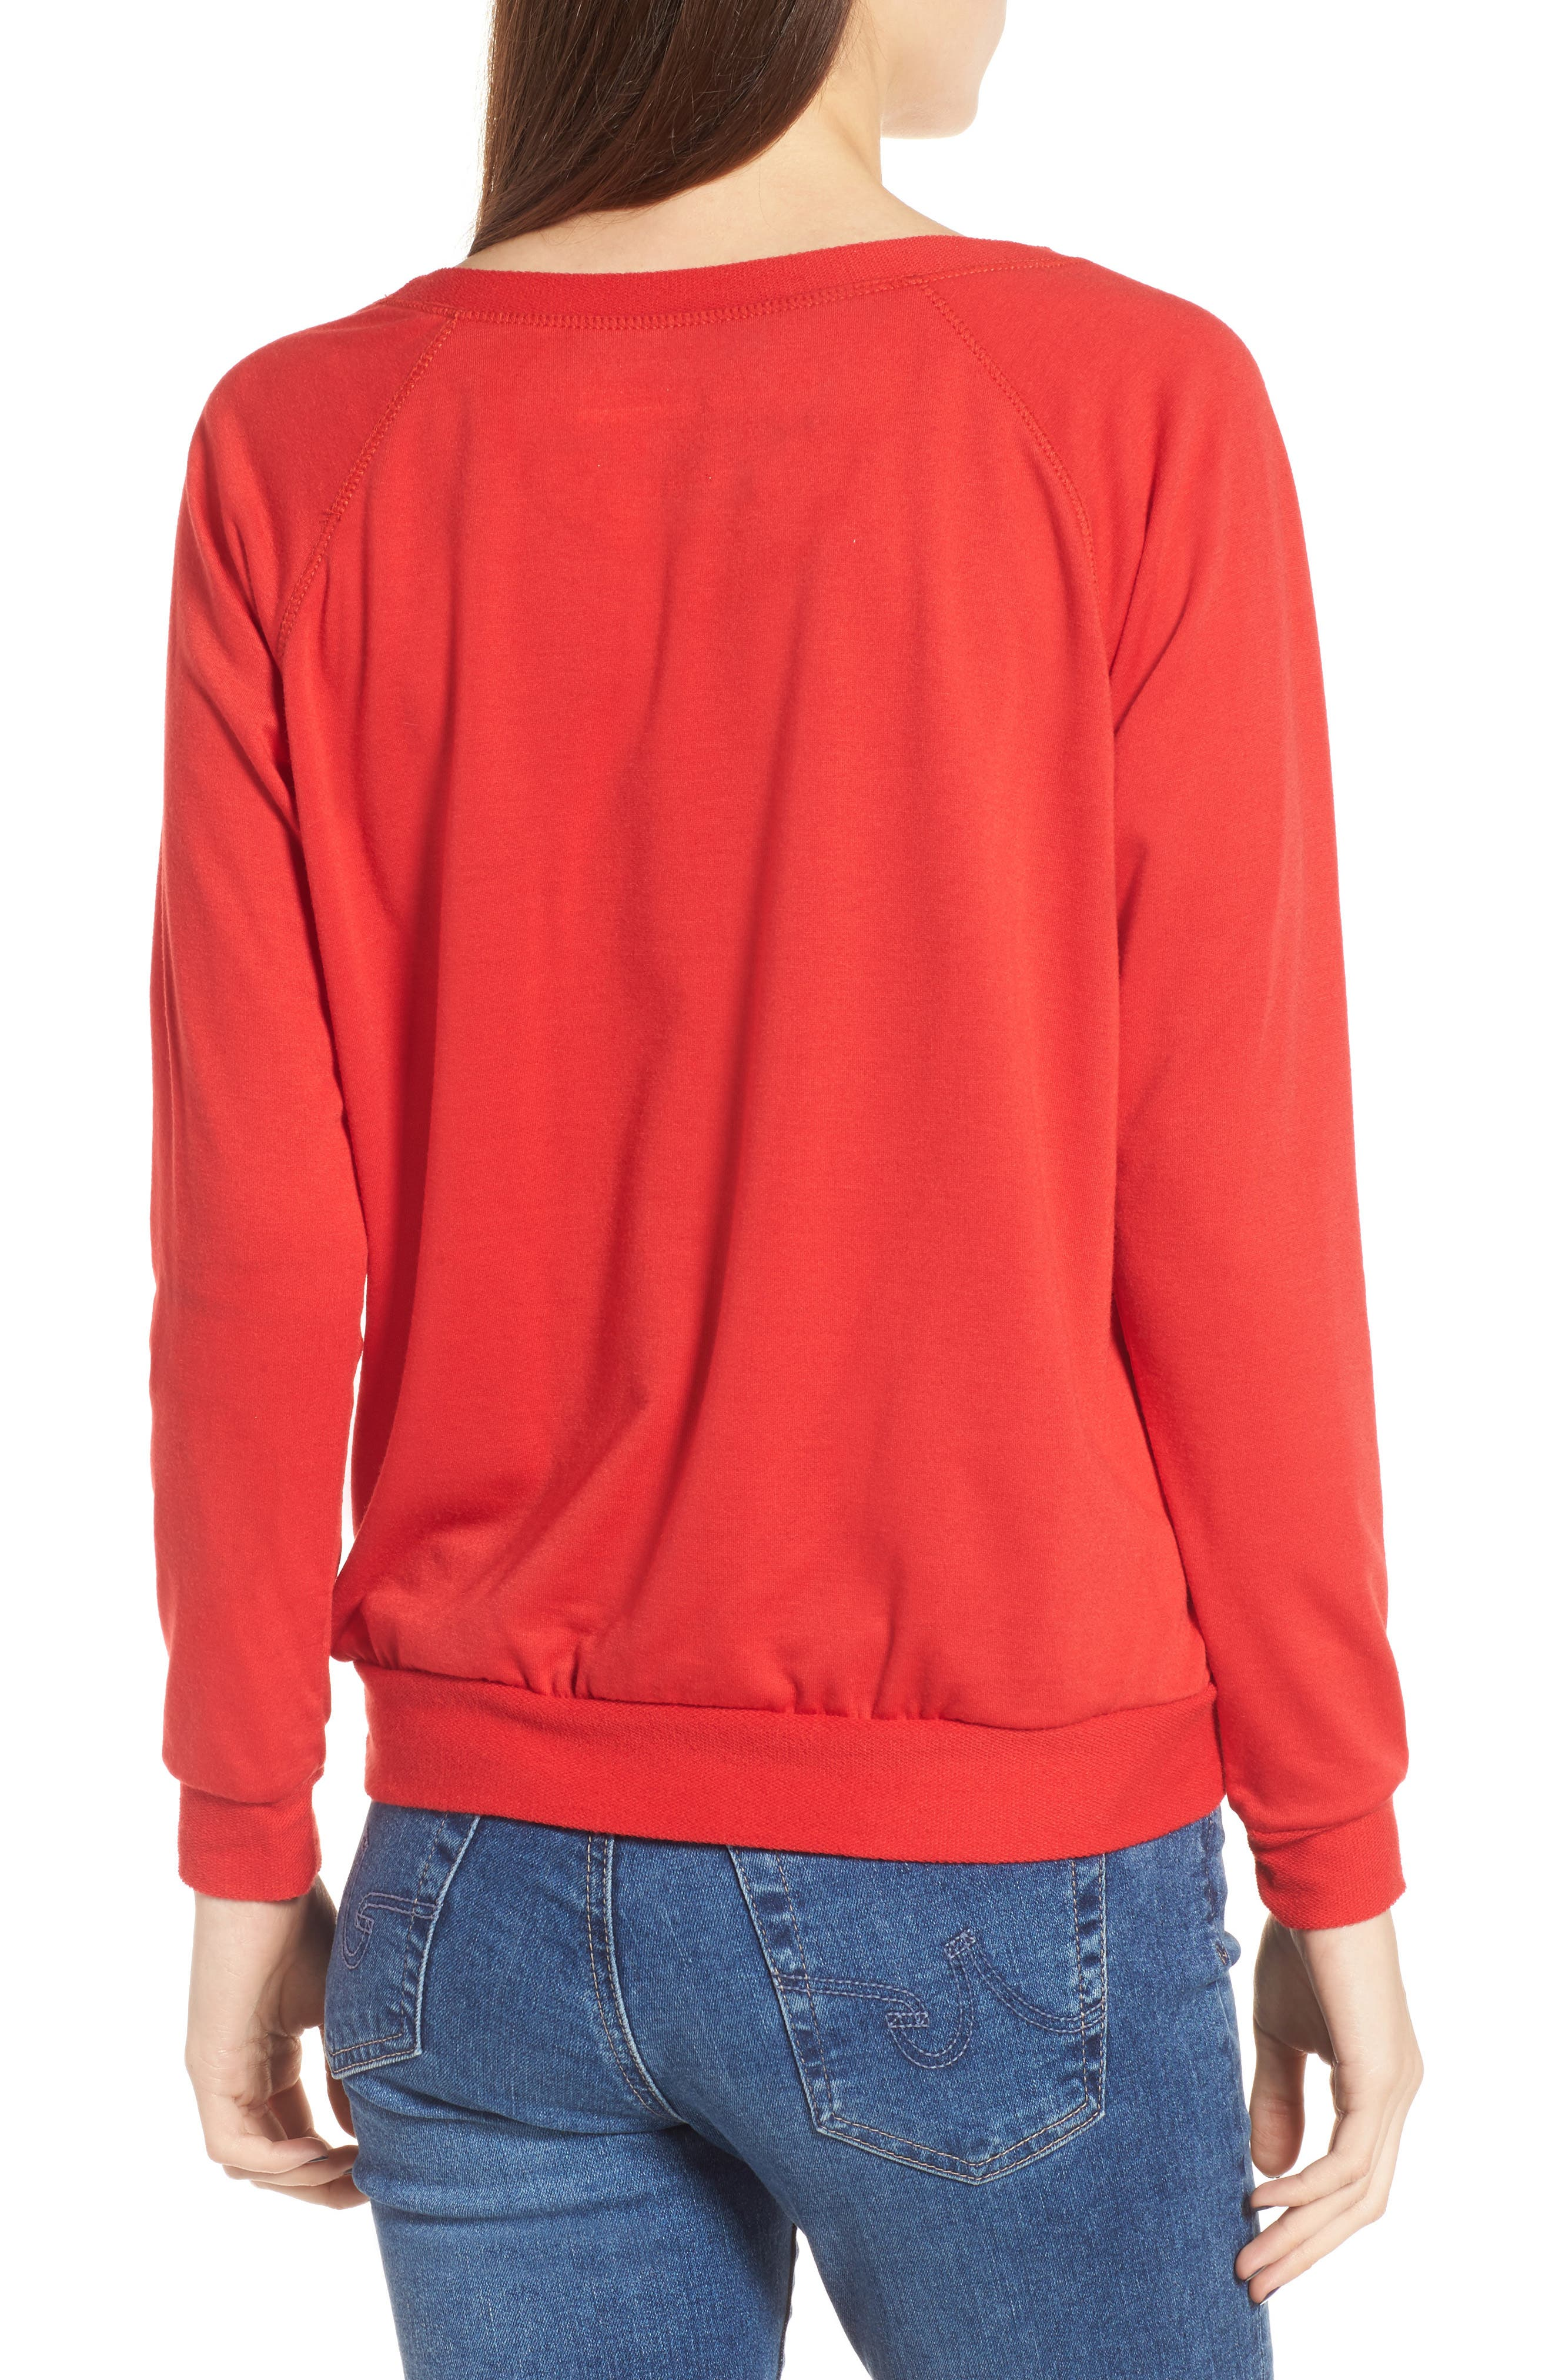 Oh Snap Sweatshirt,                             Alternate thumbnail 2, color,                             Red